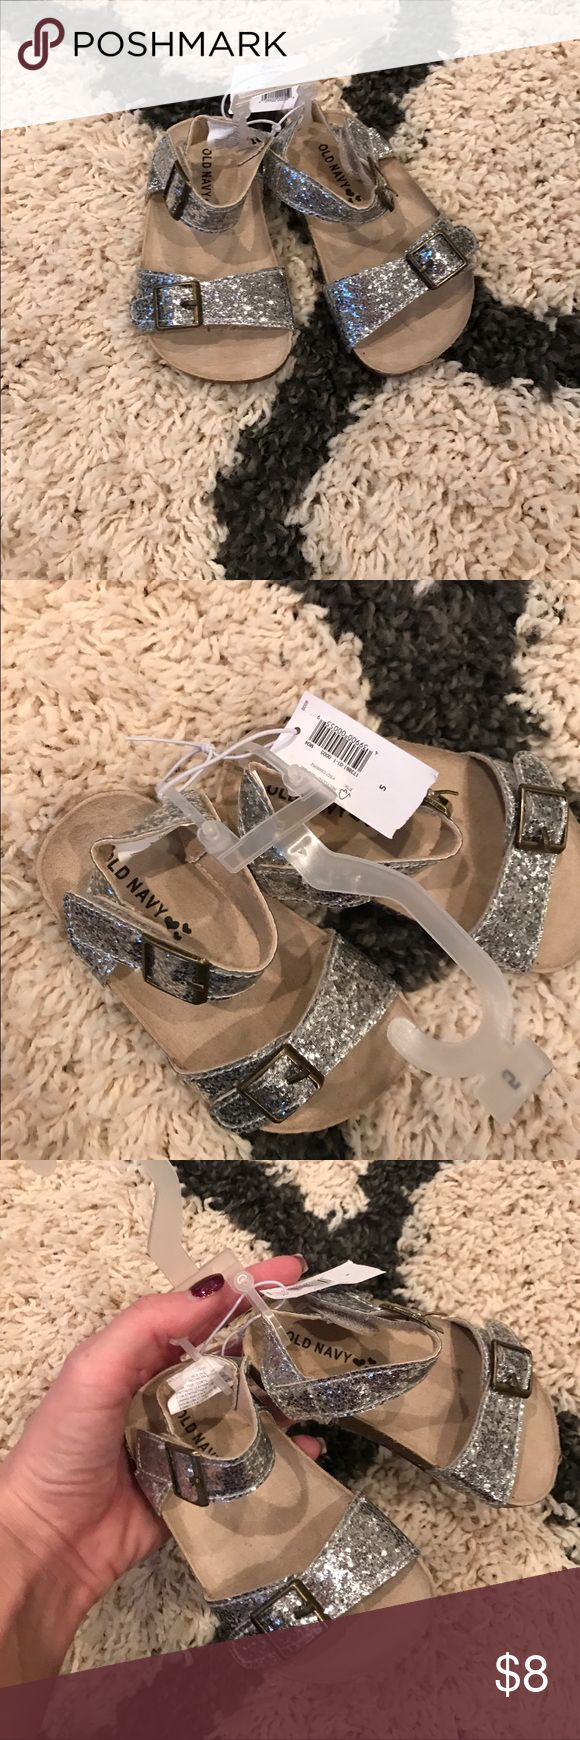 Old Navy Sandals 💜Size 5 Old Navy Sandals 💜Size 5 NWT Clean, smoke free home. Baby/toddler size 5. Old Navy Shoes Sandals & Flip Flops